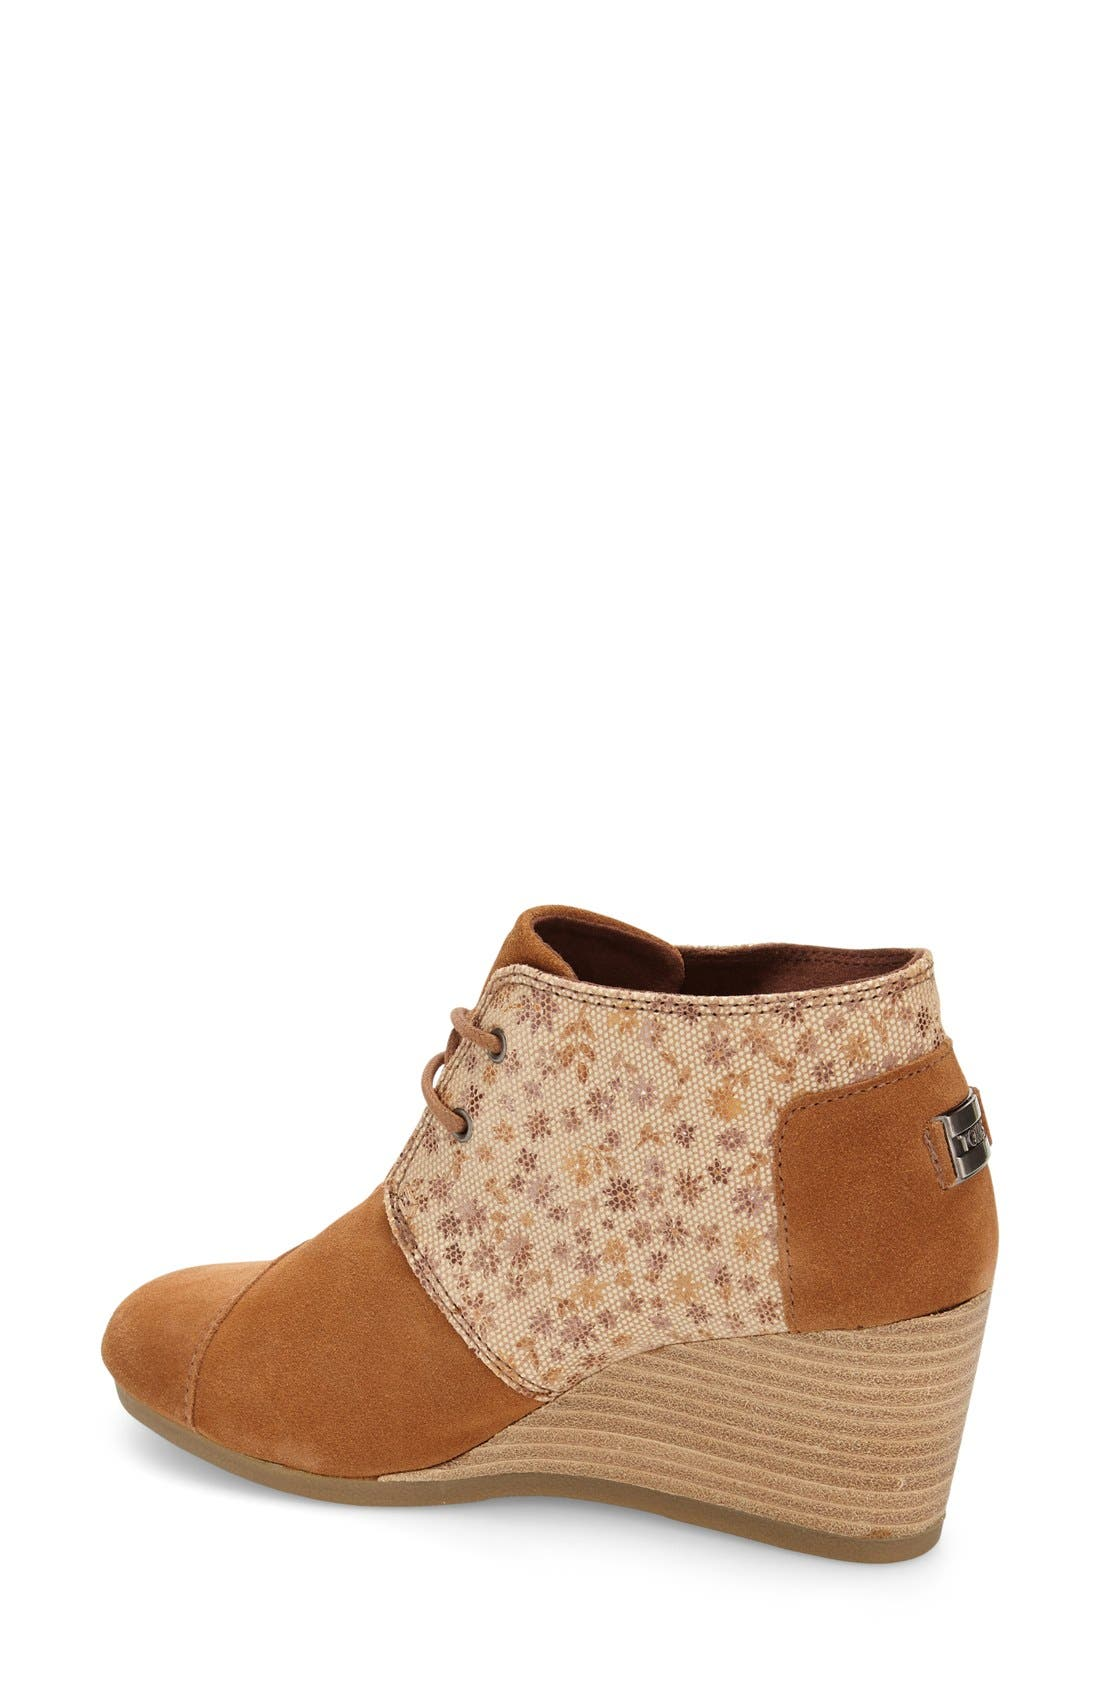 Alternate Image 2  - TOMS 'Desert' Printed Wedge Bootie (Women)